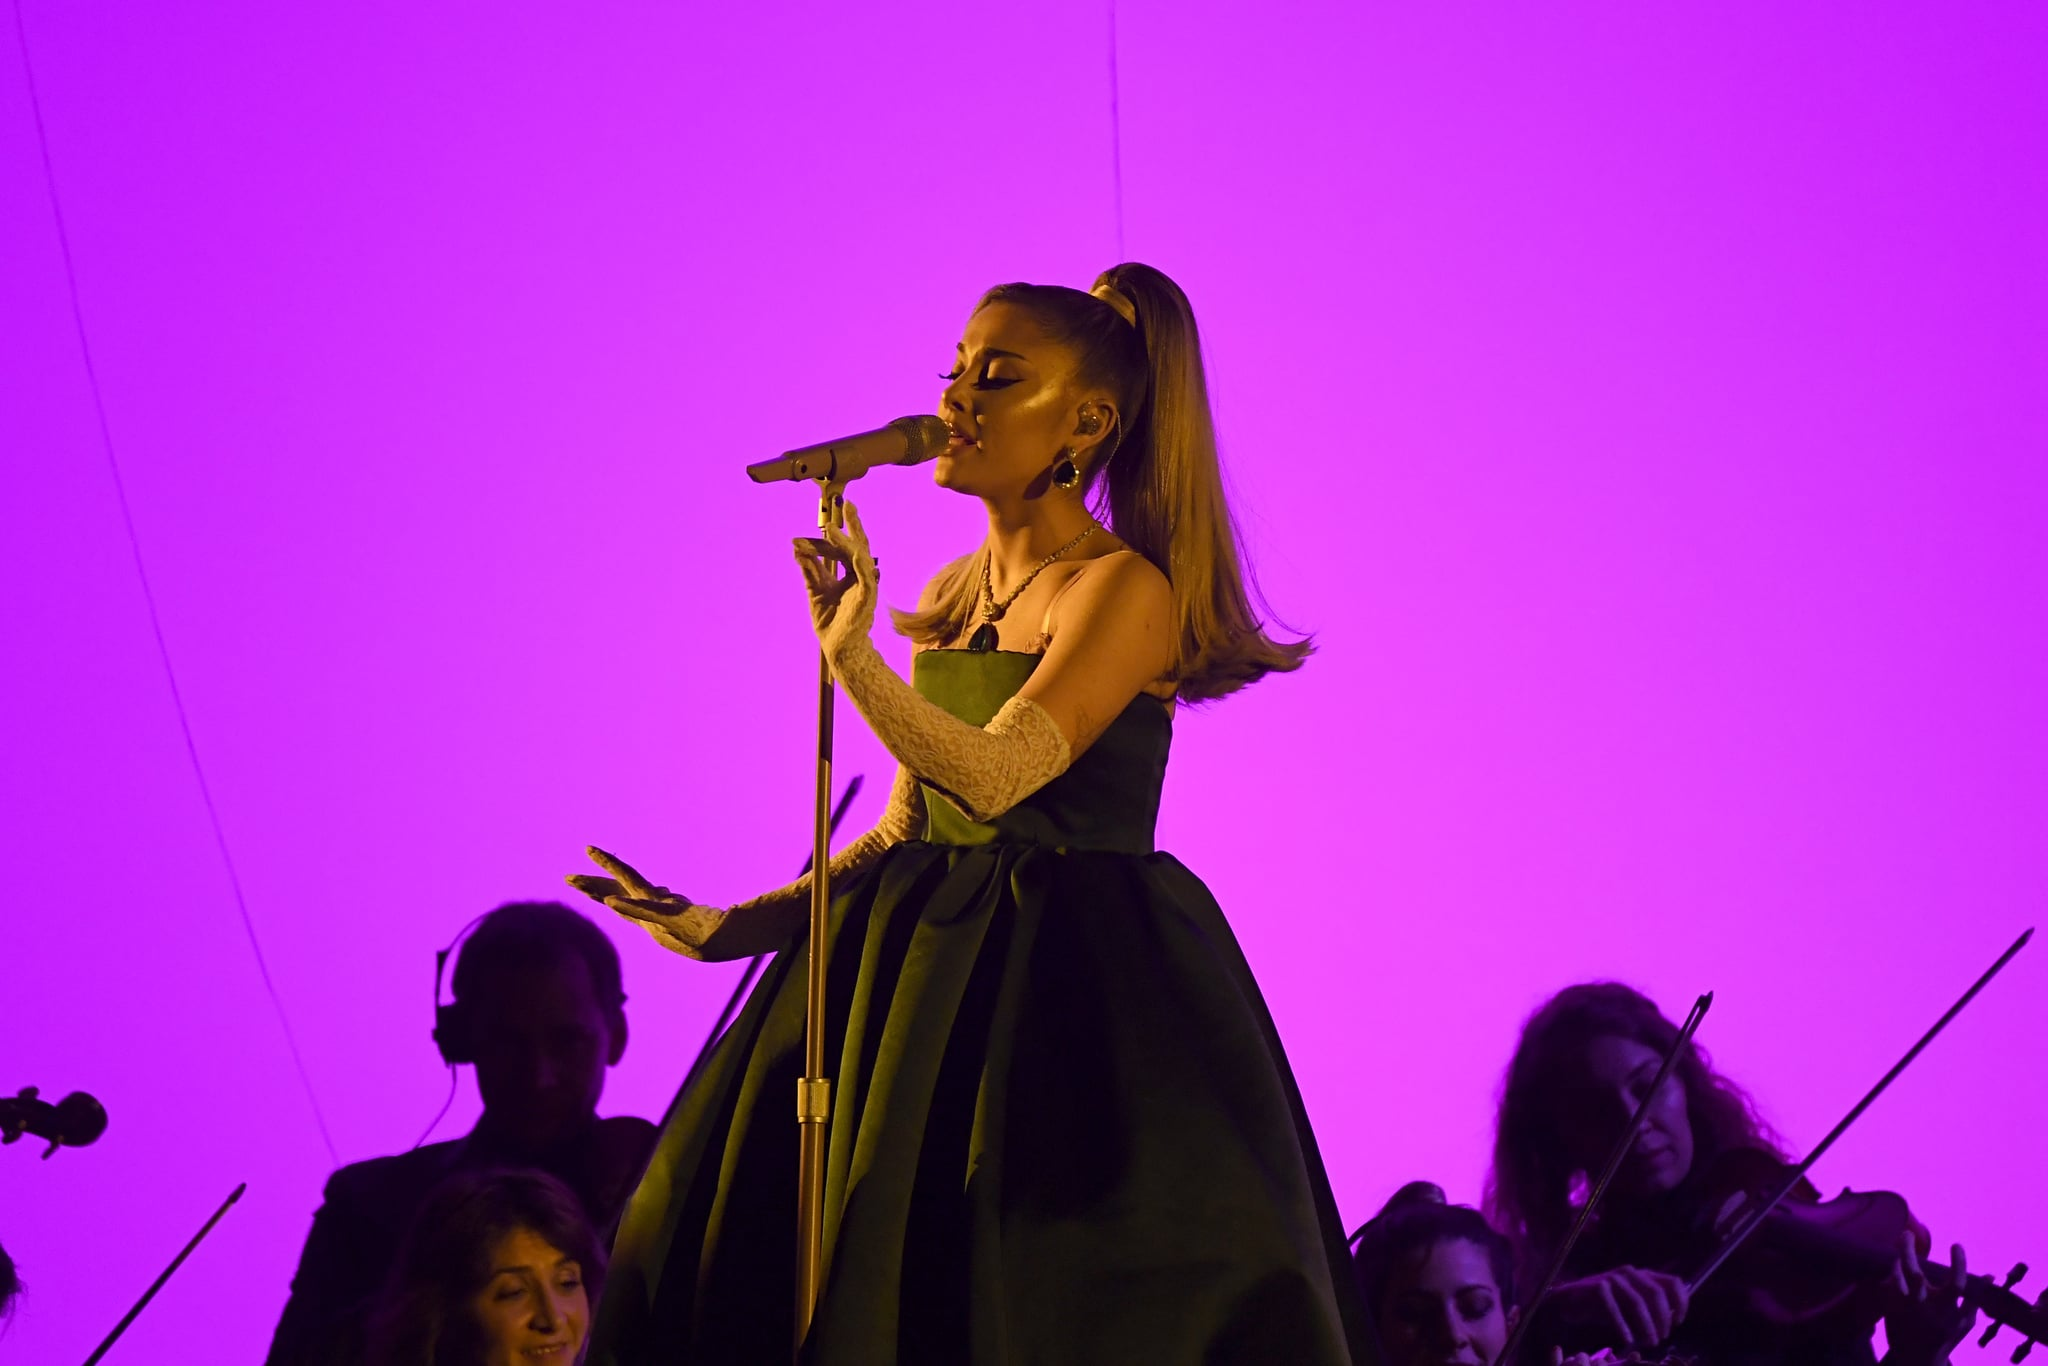 ariana grande s performance outfits at the 2020 grammys popsugar fashion performance outfits at the 2020 grammys